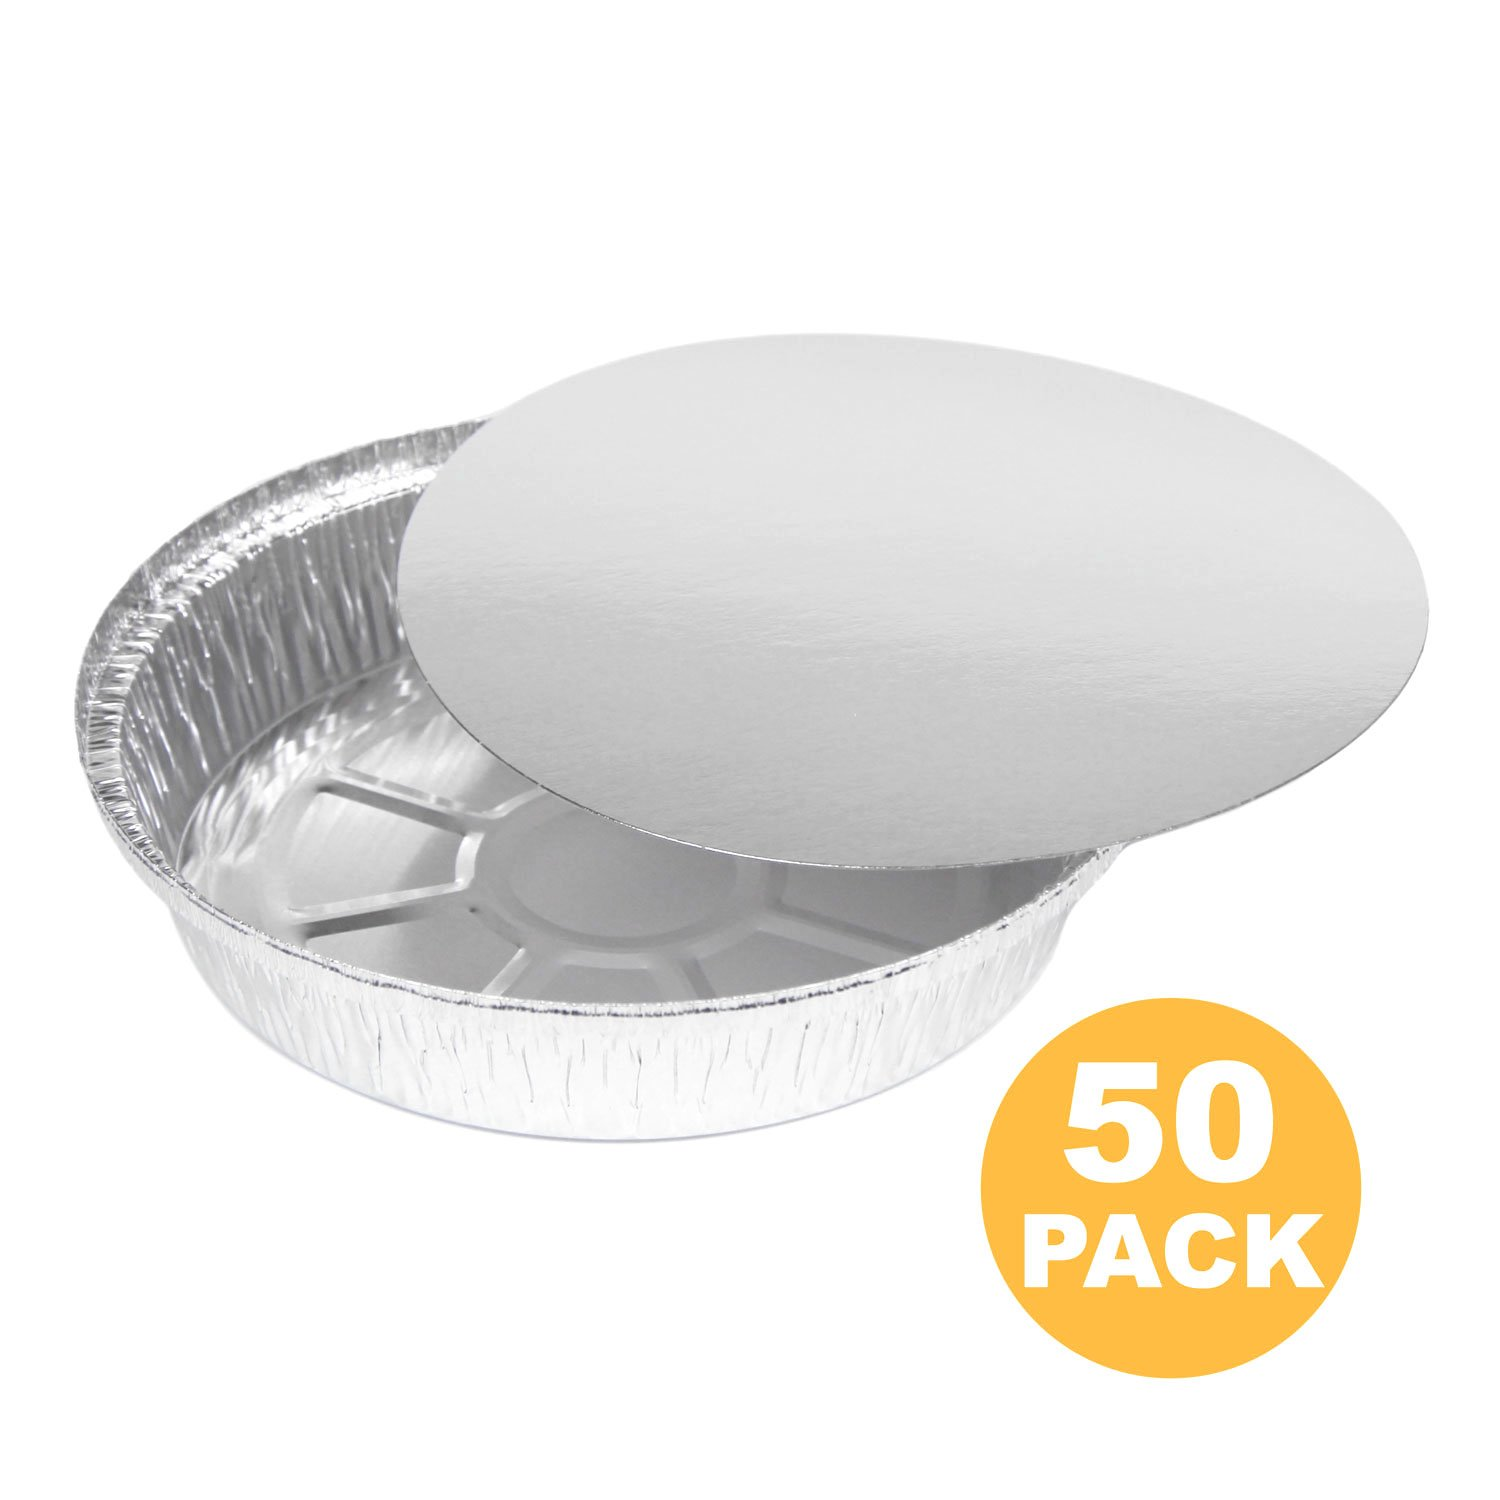 Round 8 Inch 37 oz, 2.3 lb, 1.1 Quart Disposable Aluminum Foil Pan Take Out Food Containers with Flat Board Lids, Steam Table Hot Cold Freezer Roasting Baking Oven Safe [50 Pack] by Fit Meal Prep